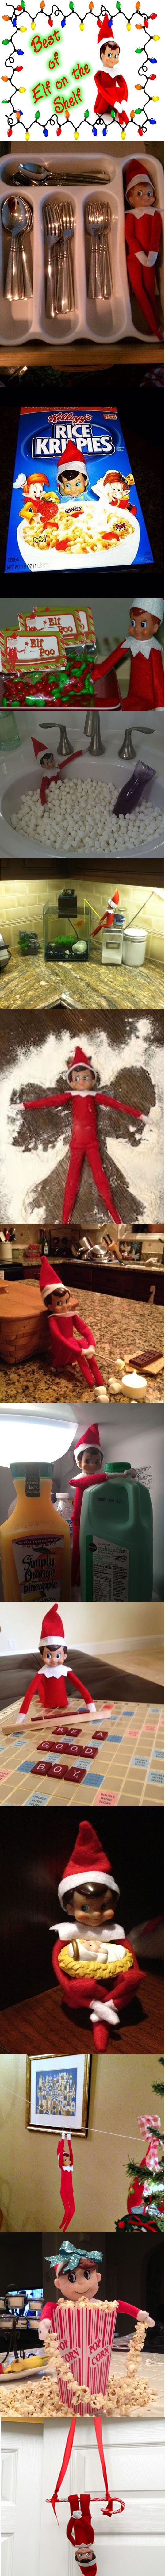 Best of Elf on the Shelf-love the fishing one. Must do!